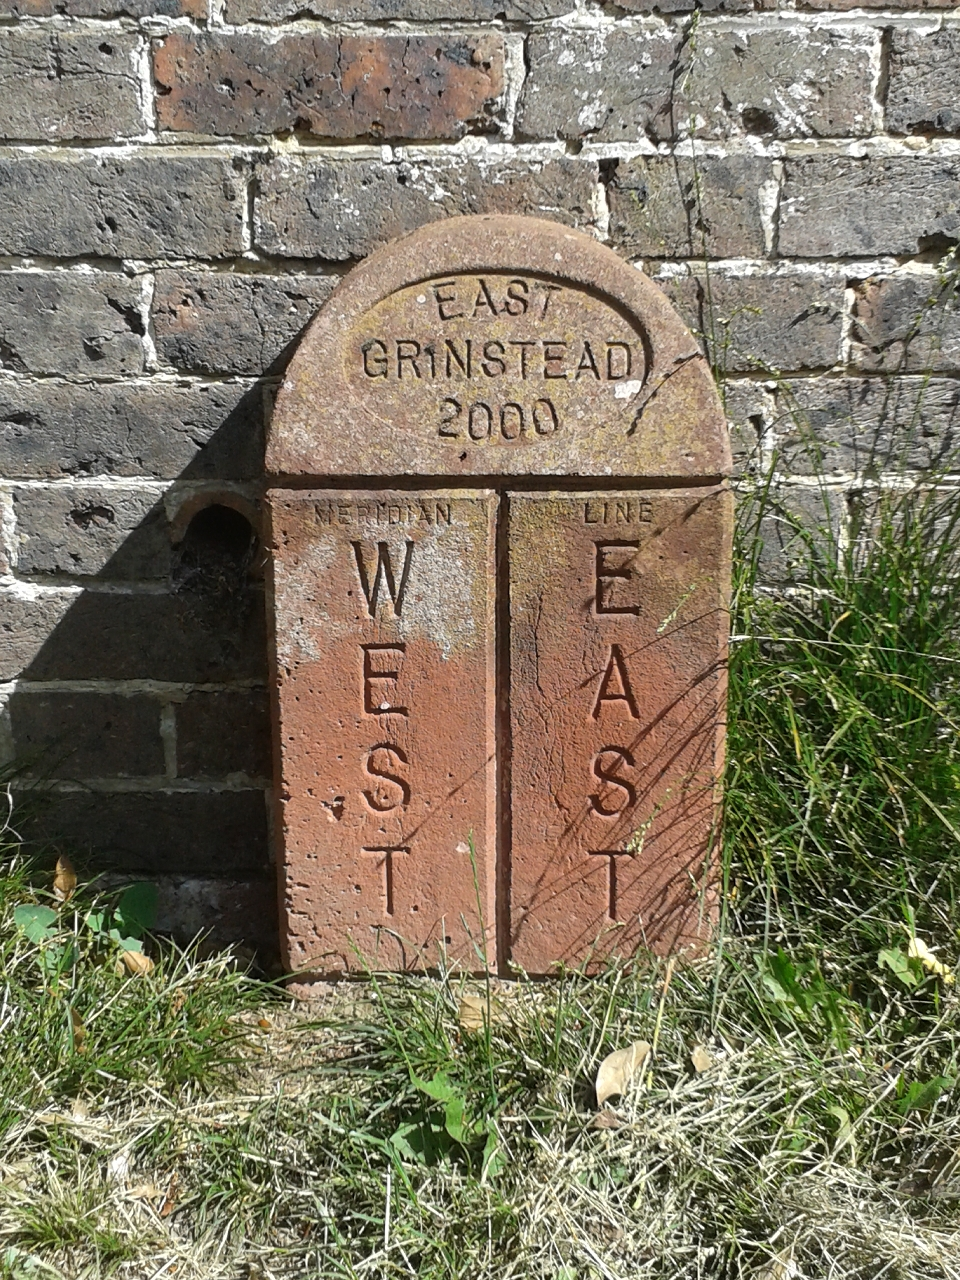 Marker stone showing Meridian Line © East Grinstead Town Promotions